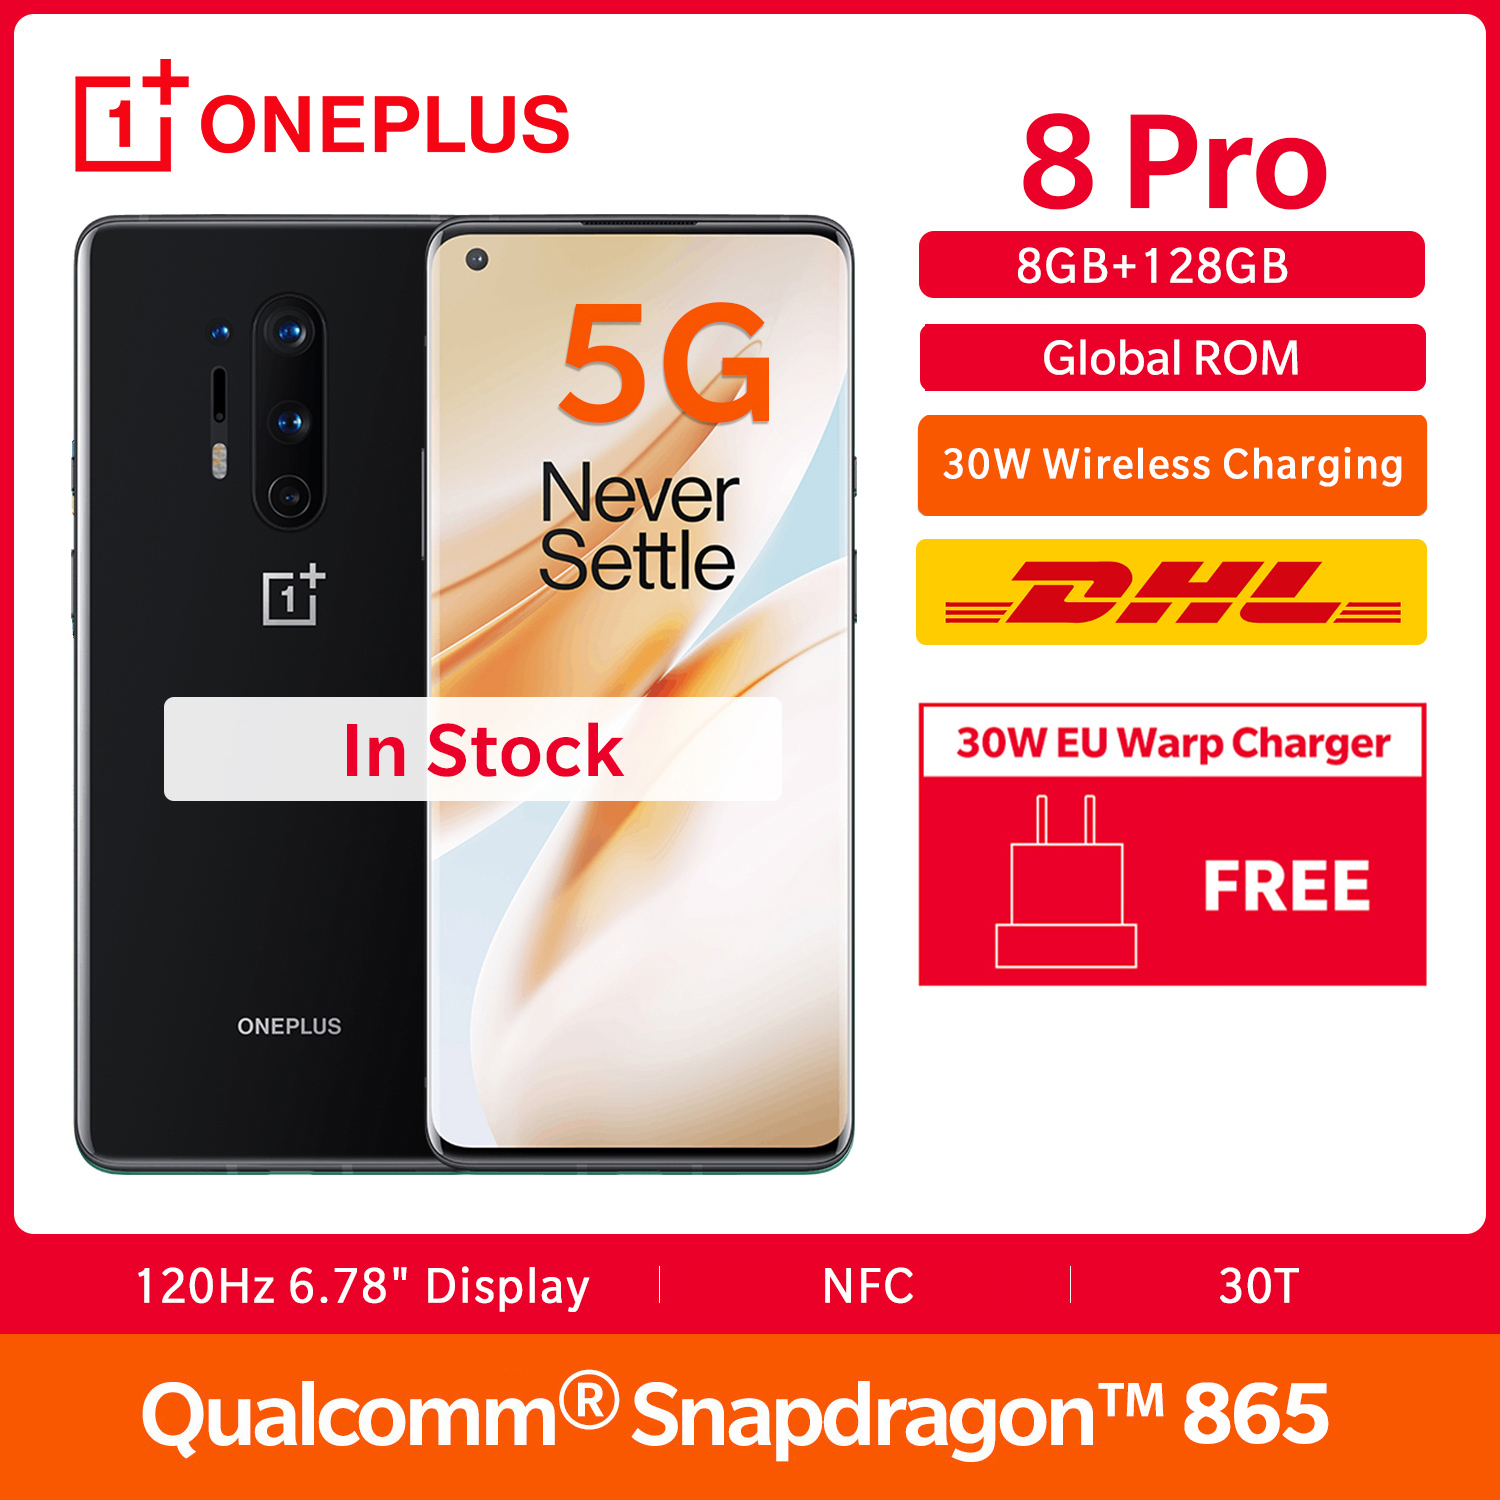 In Stock OnePlus 8 Pro 5G Global Rom 8GB 128GB Smartphone Snapdragon 865 120Hz Display 6.78